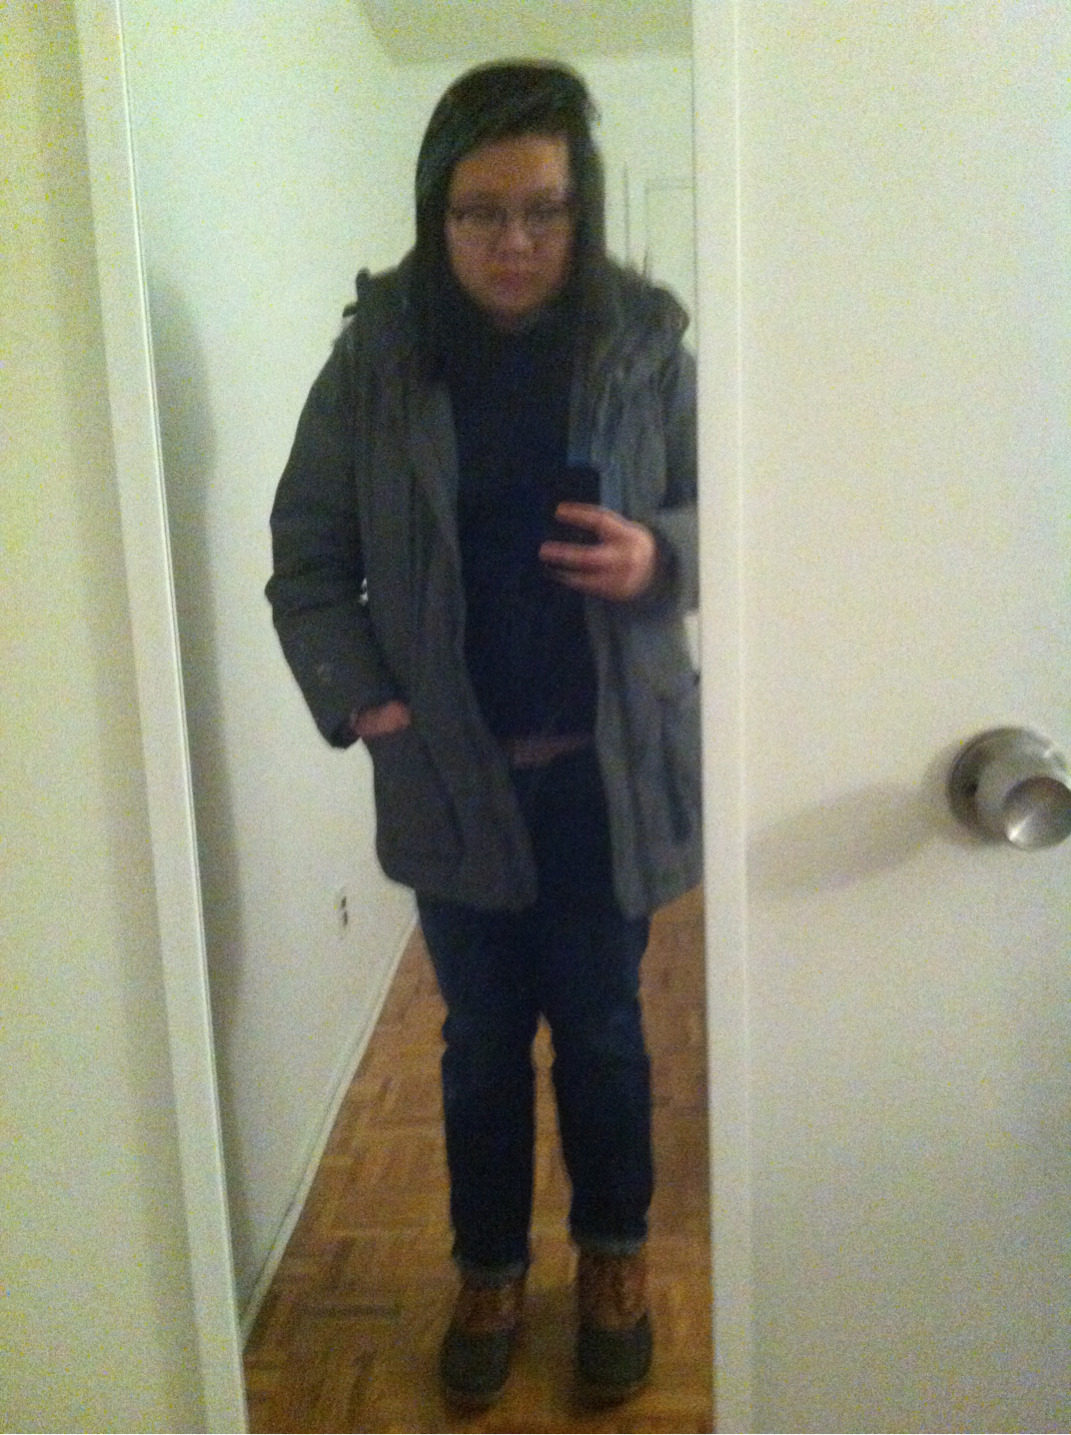 Cold, rainy day in NYC means layering and boots. Off to dinner and Lord Huron.